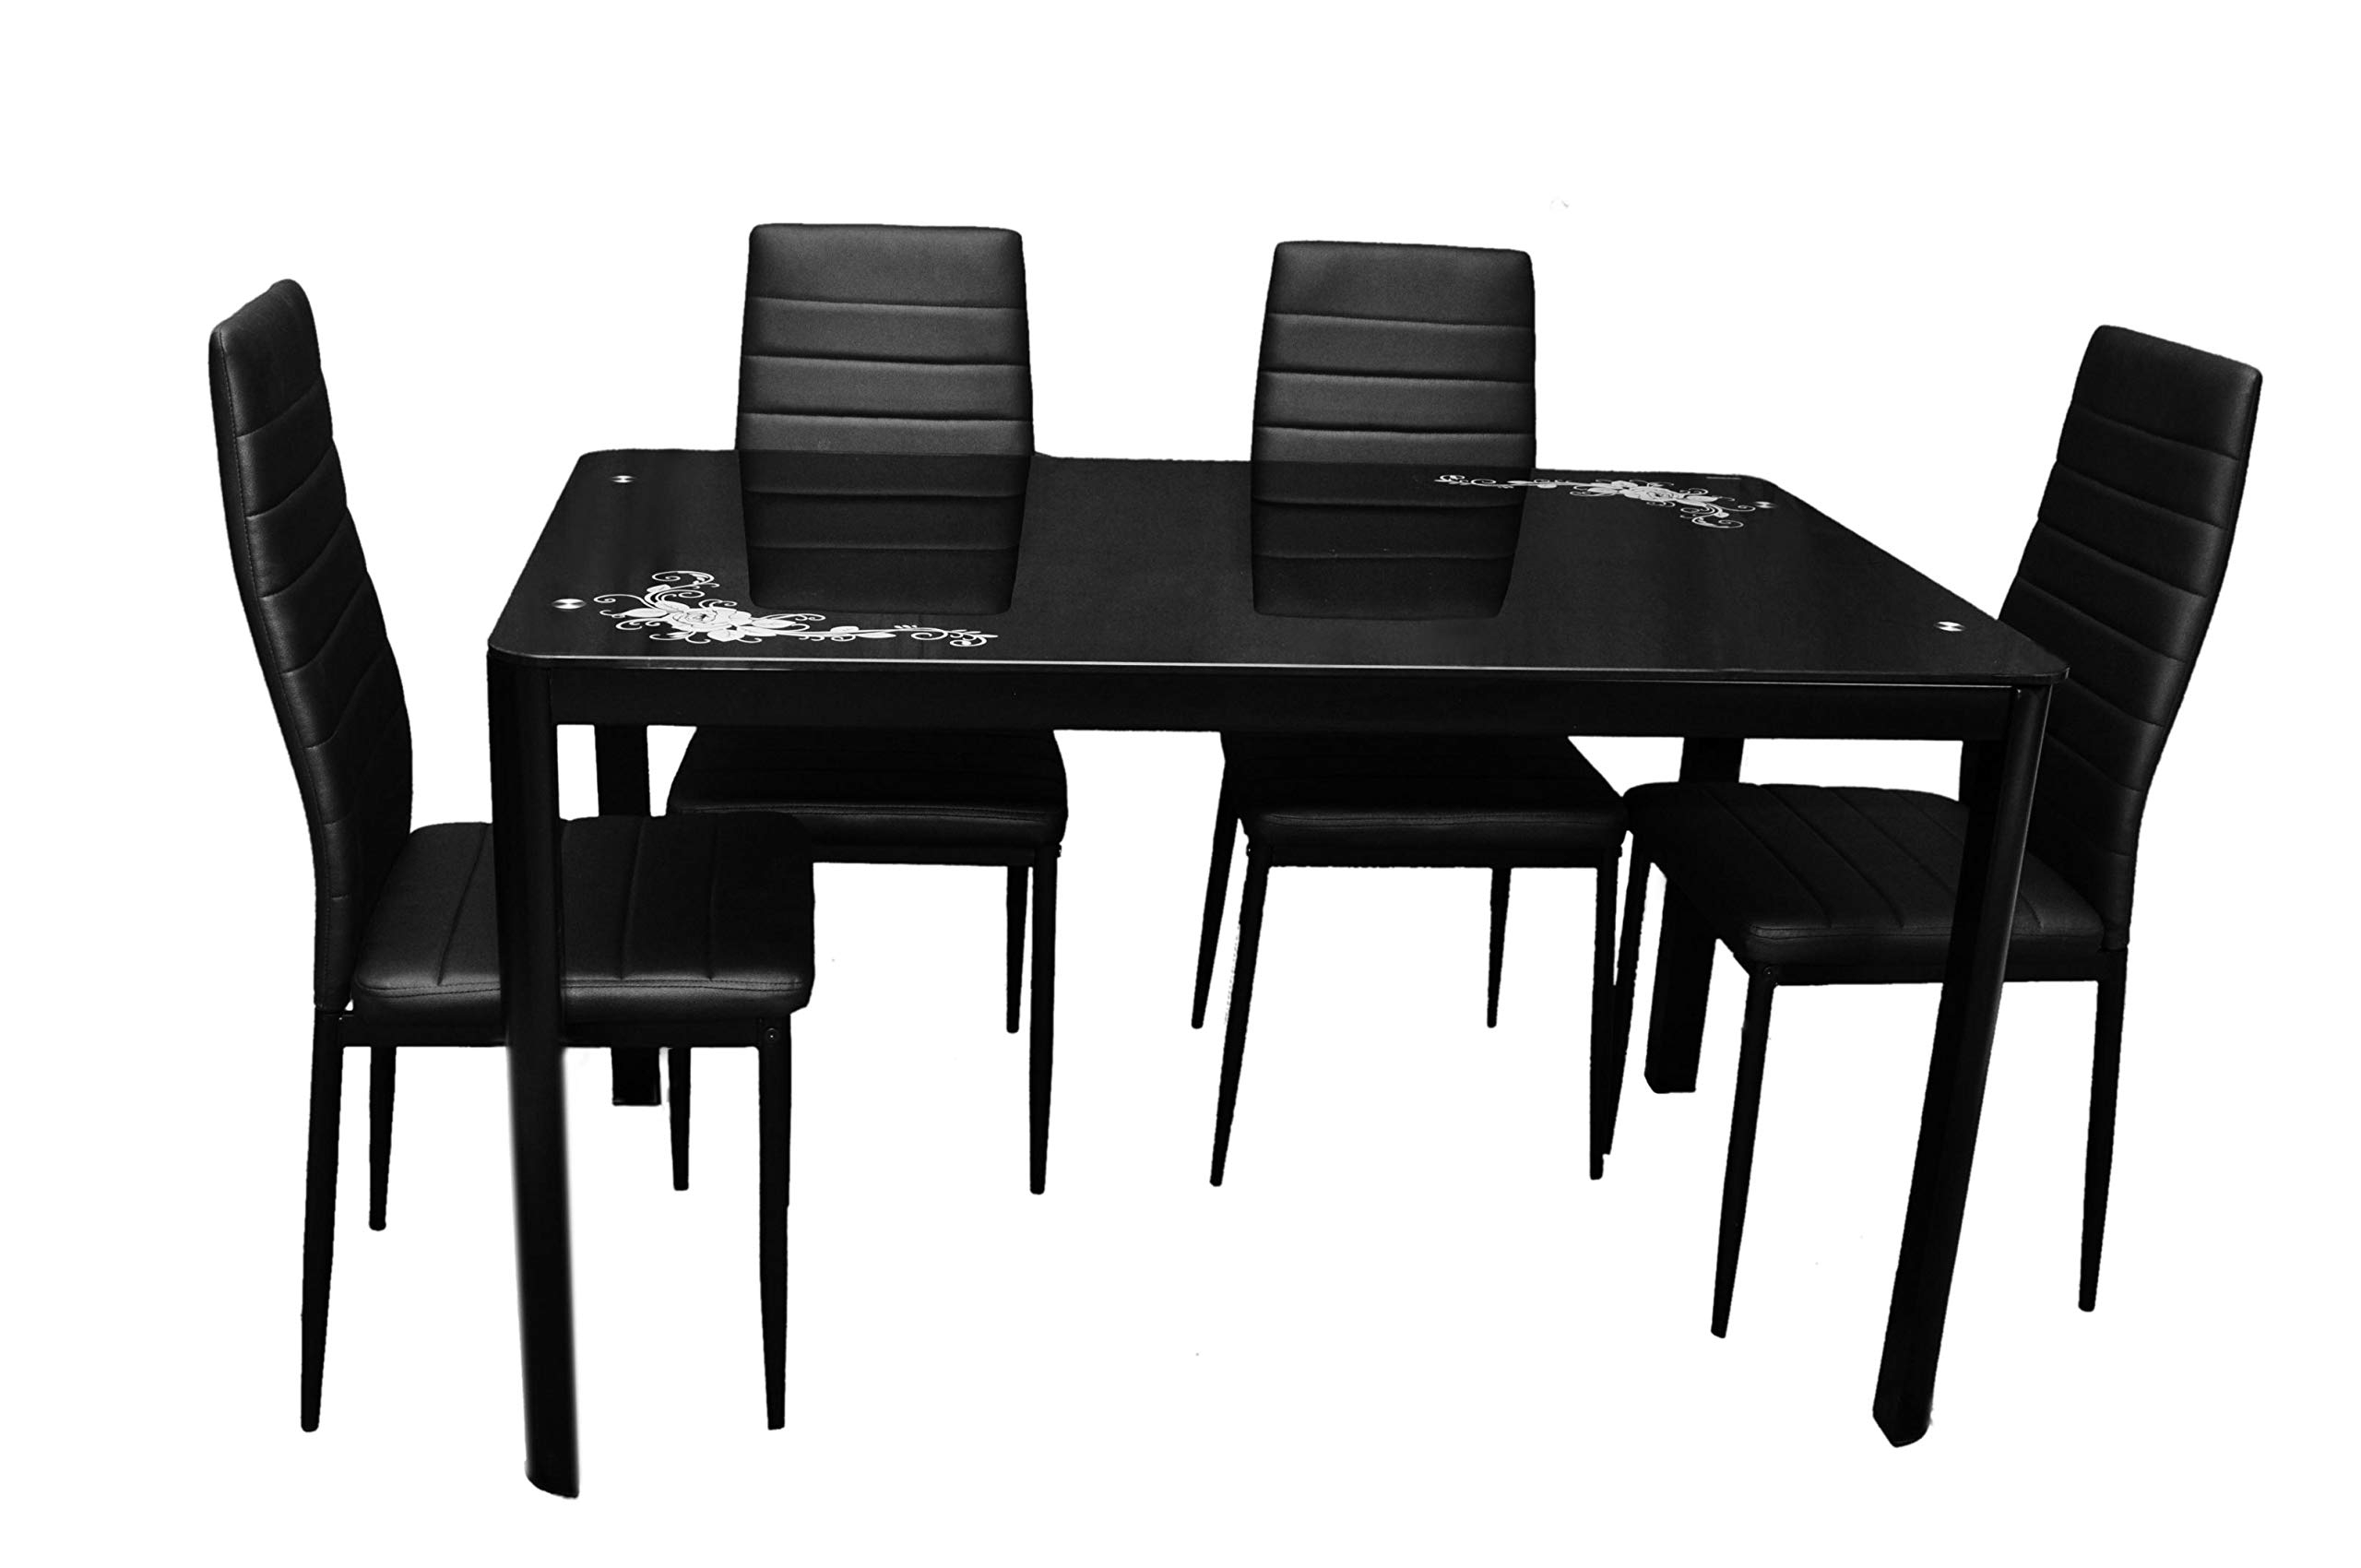 Most Popular Zena Metal And Glass Dining Table Set, With 4 Chairs, Black 130 Cm X 80 Cm  X 74 Cm With Regard To Glass Dining Tables With Metal Legs (Gallery 24 of 30)